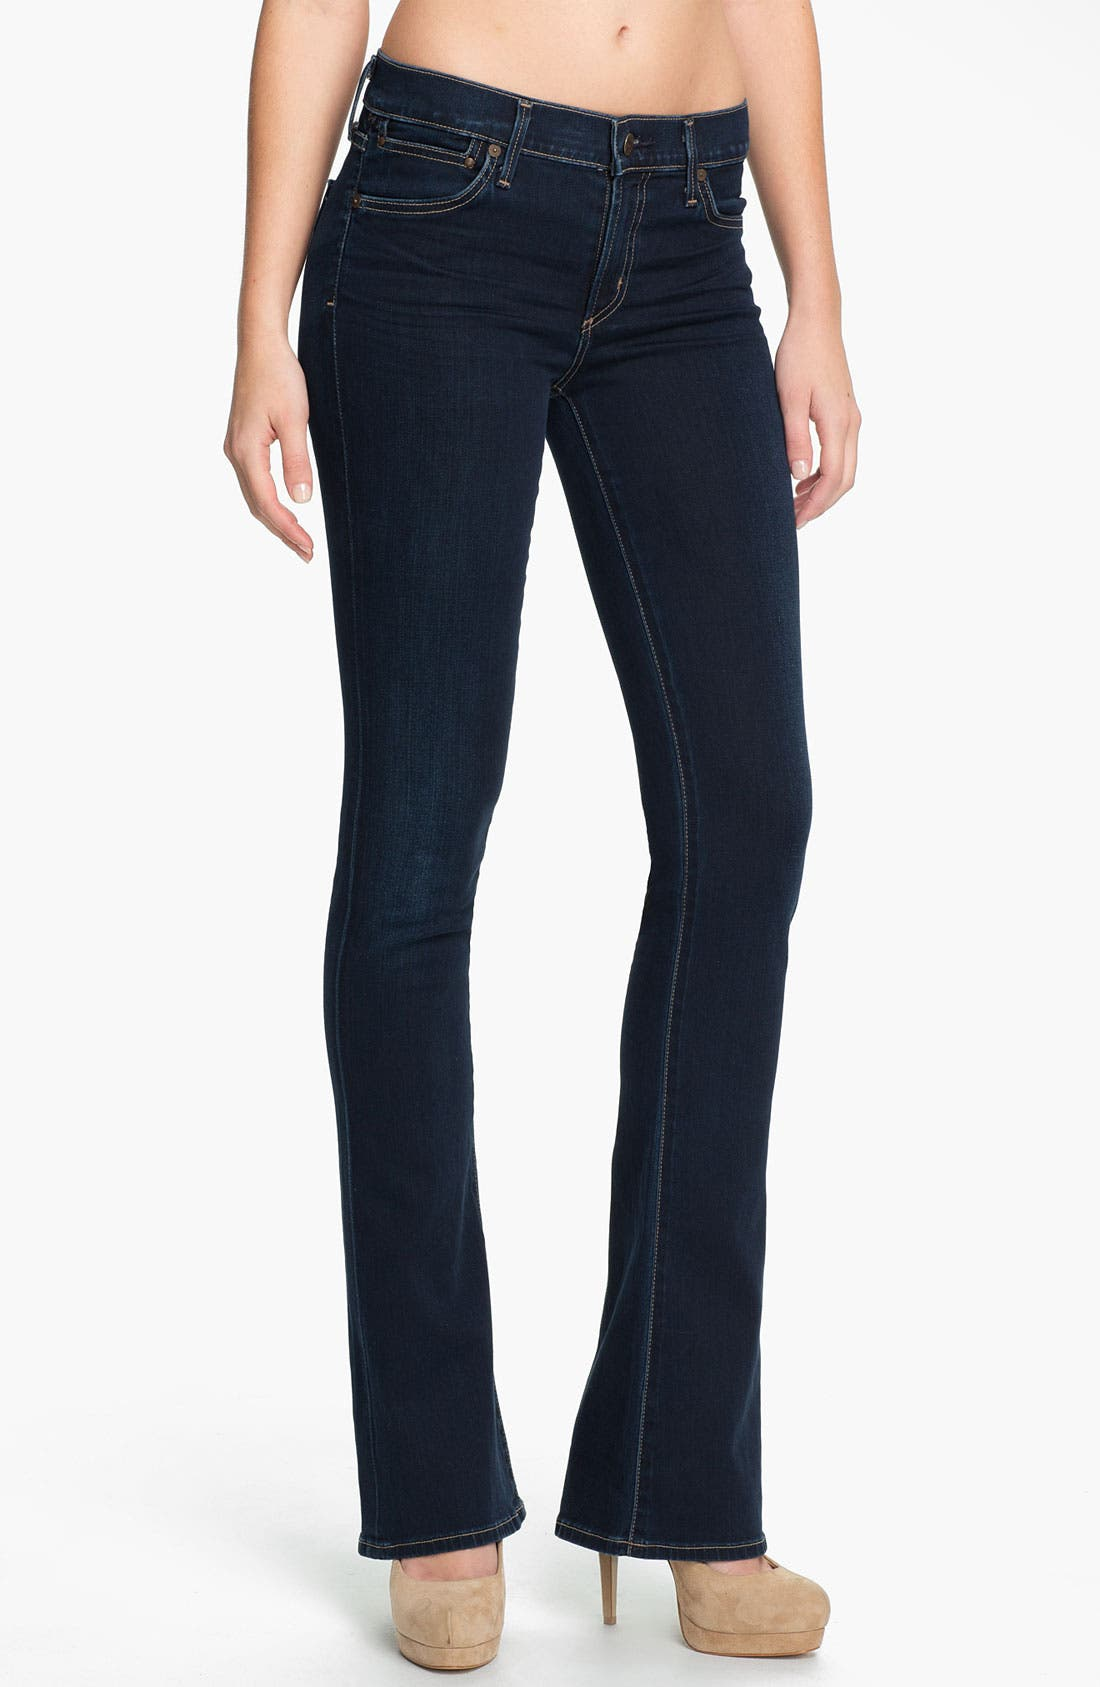 Main Image - Citizens of Humanity 'Emmanuelle' Slim Bootcut Jeans (Starry)